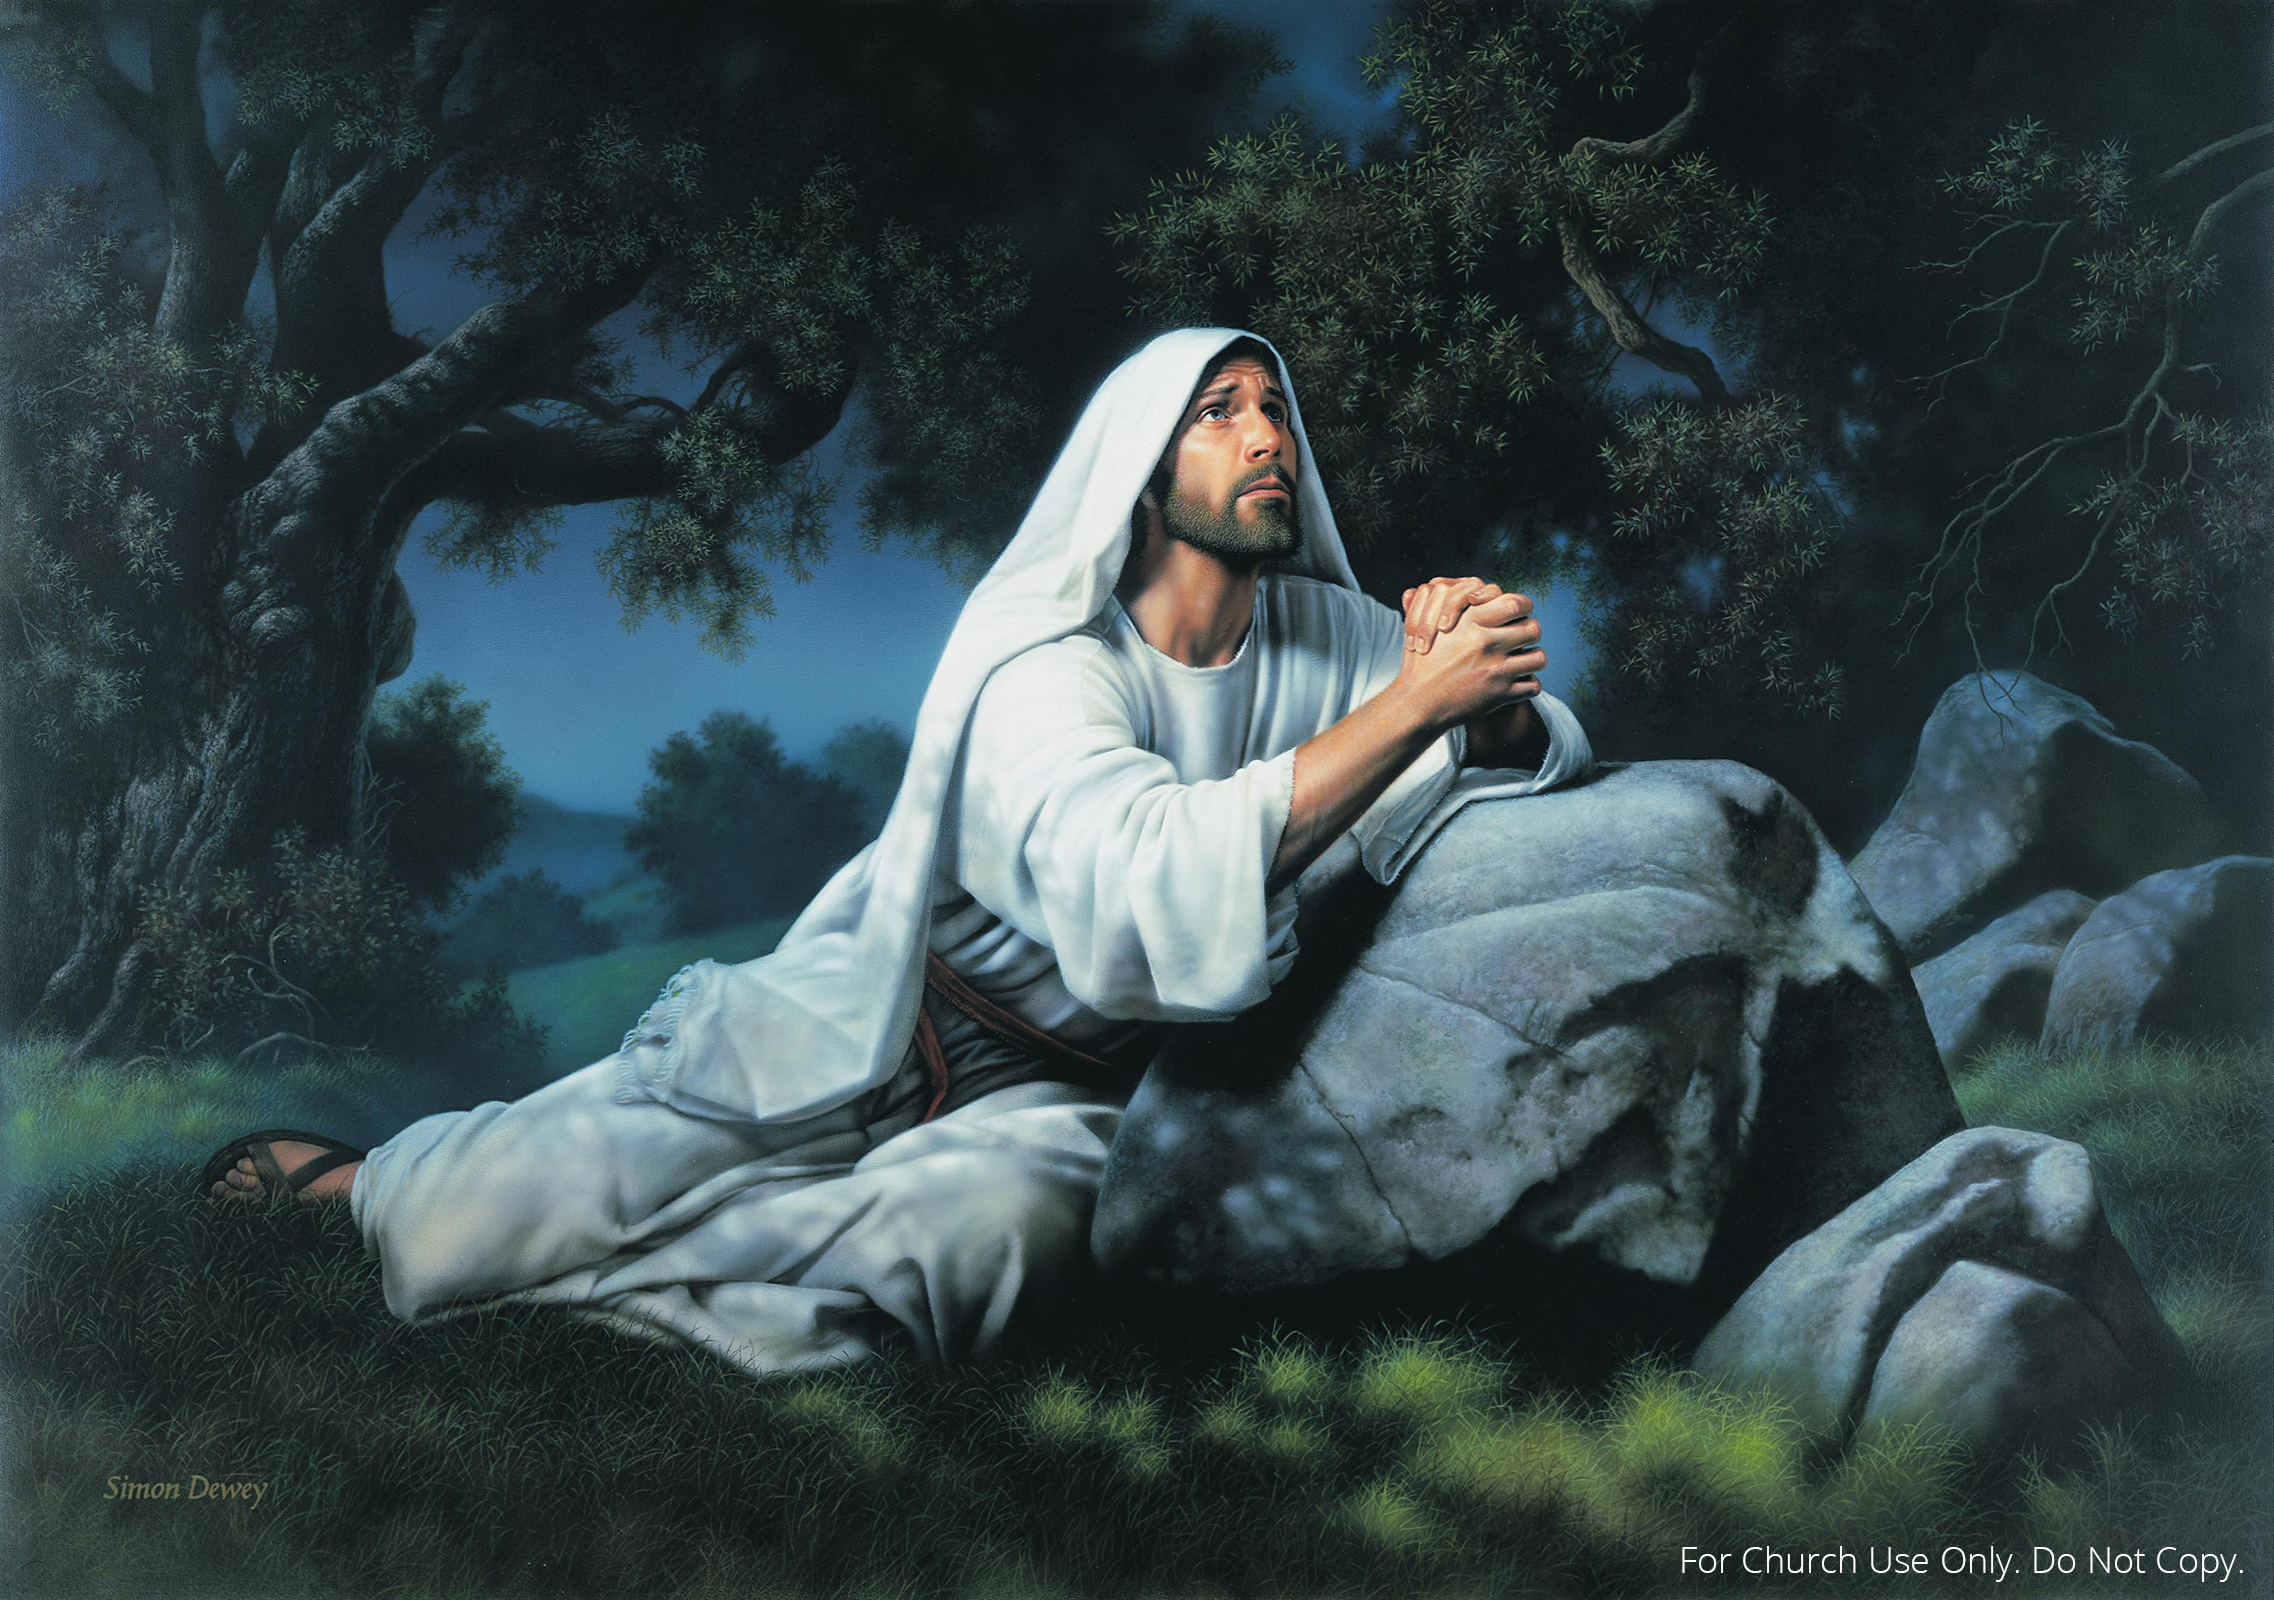 O my father Jesus praying in the garden of gethsemane